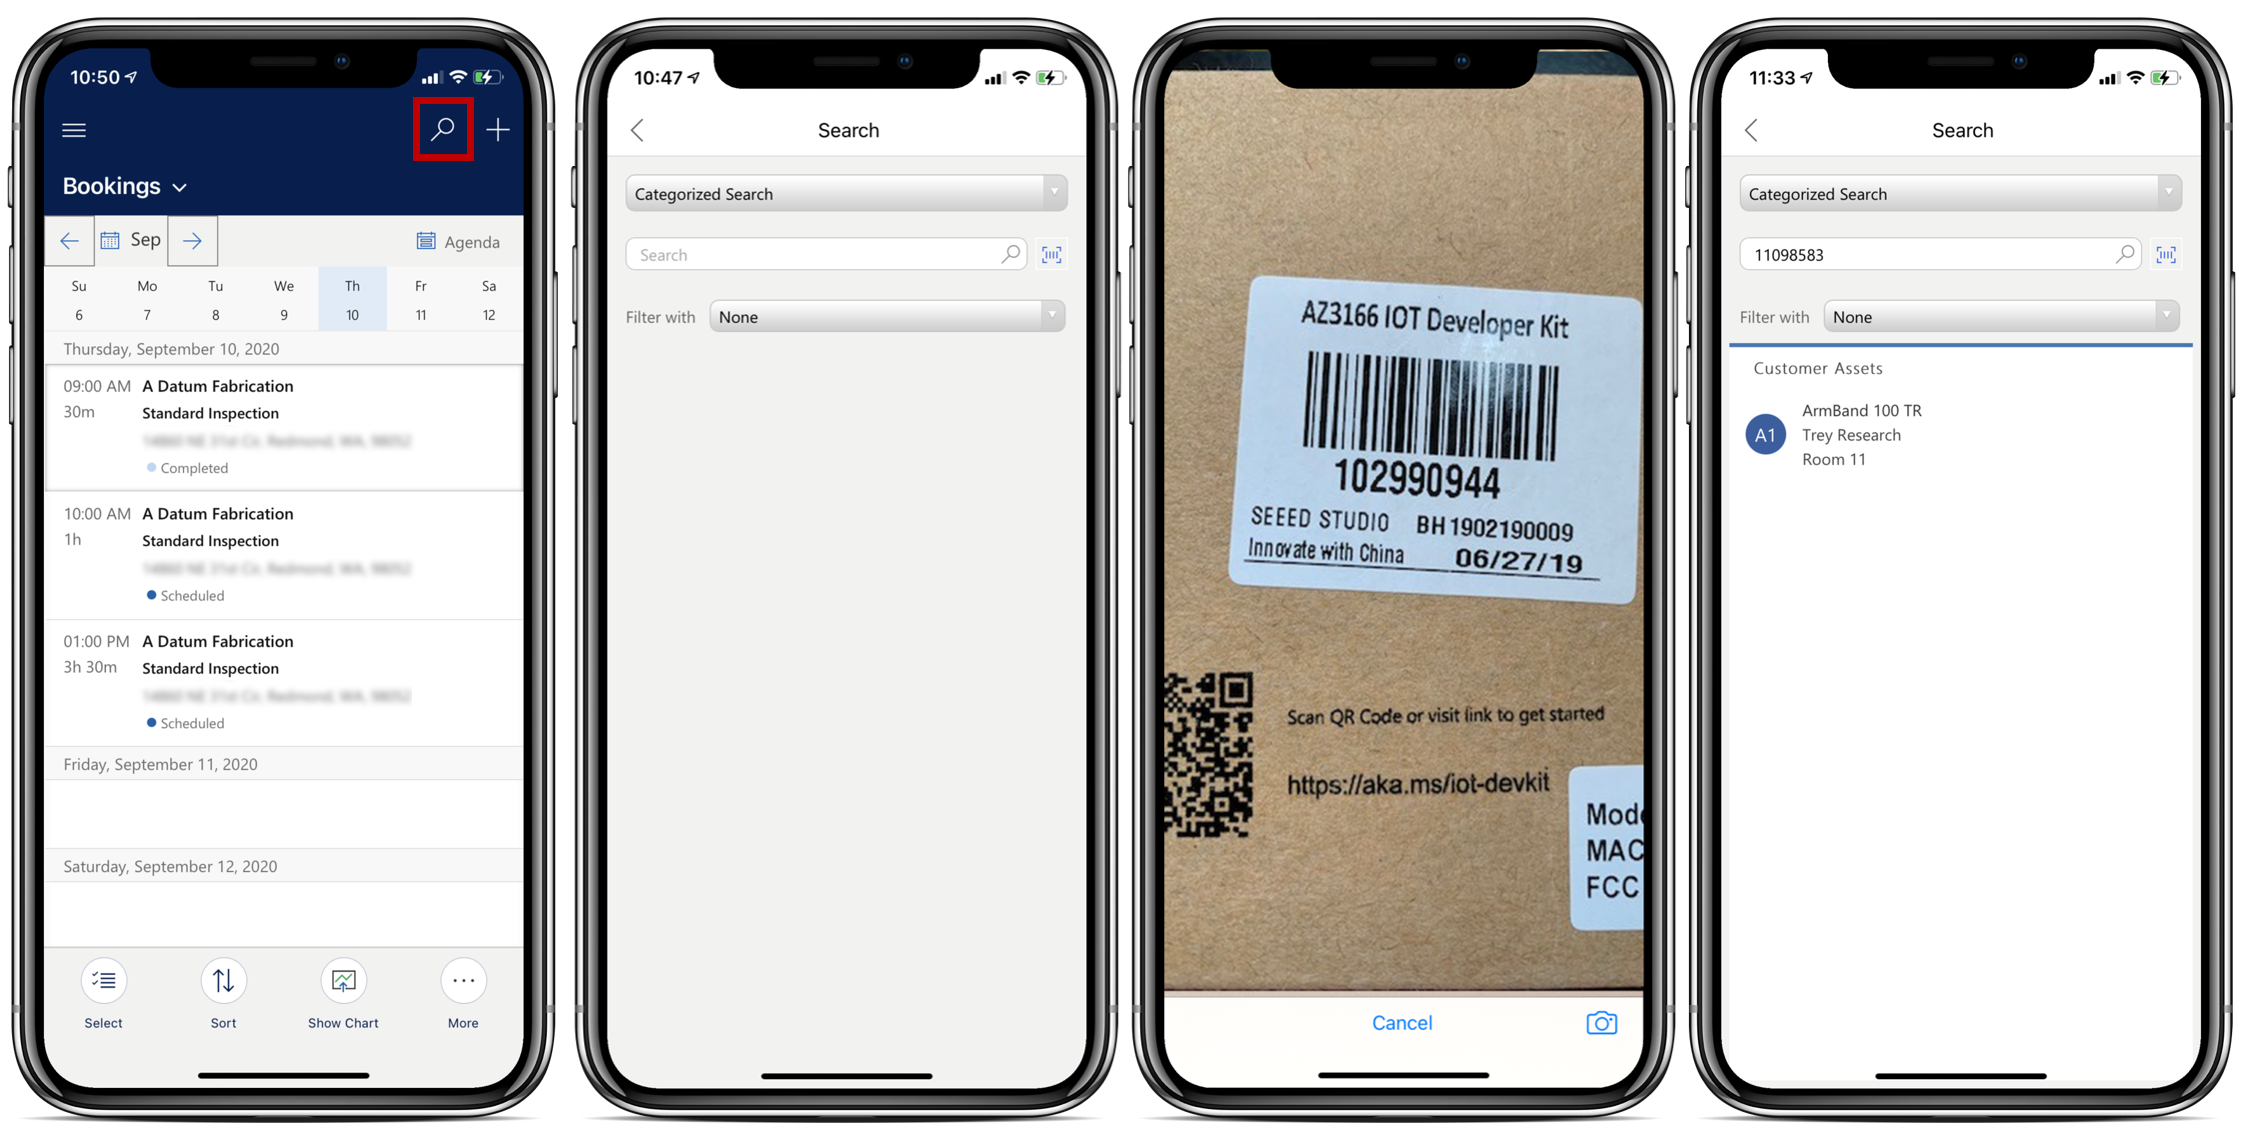 Simulated image showing four mobile devices in different stages of the barcode scan process.